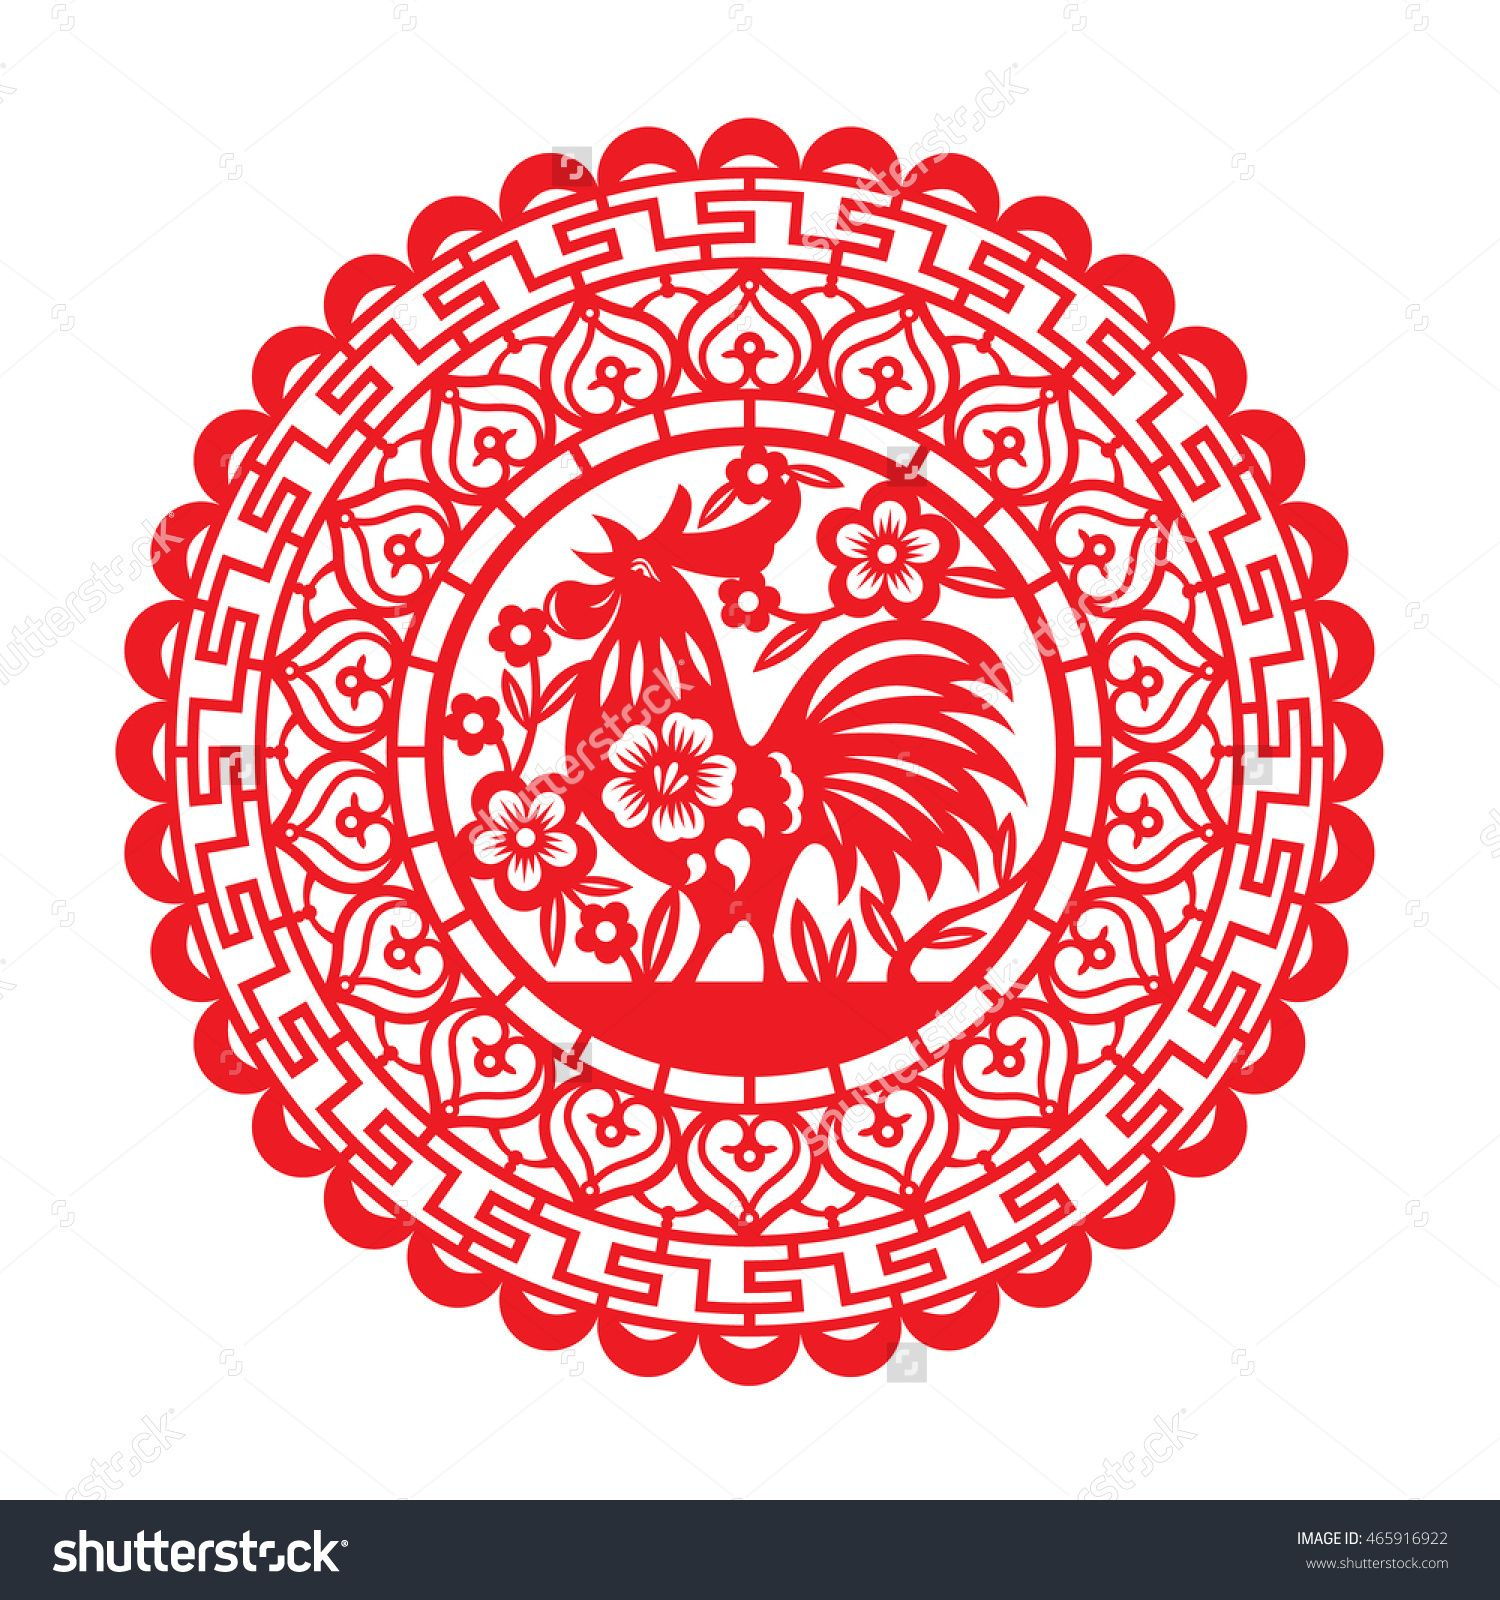 Red paper cut chicken rooster in circle zodiac symbols for chinese red paper cut chicken rooster in circle zodiac symbols for chinese new year vector art design buycottarizona